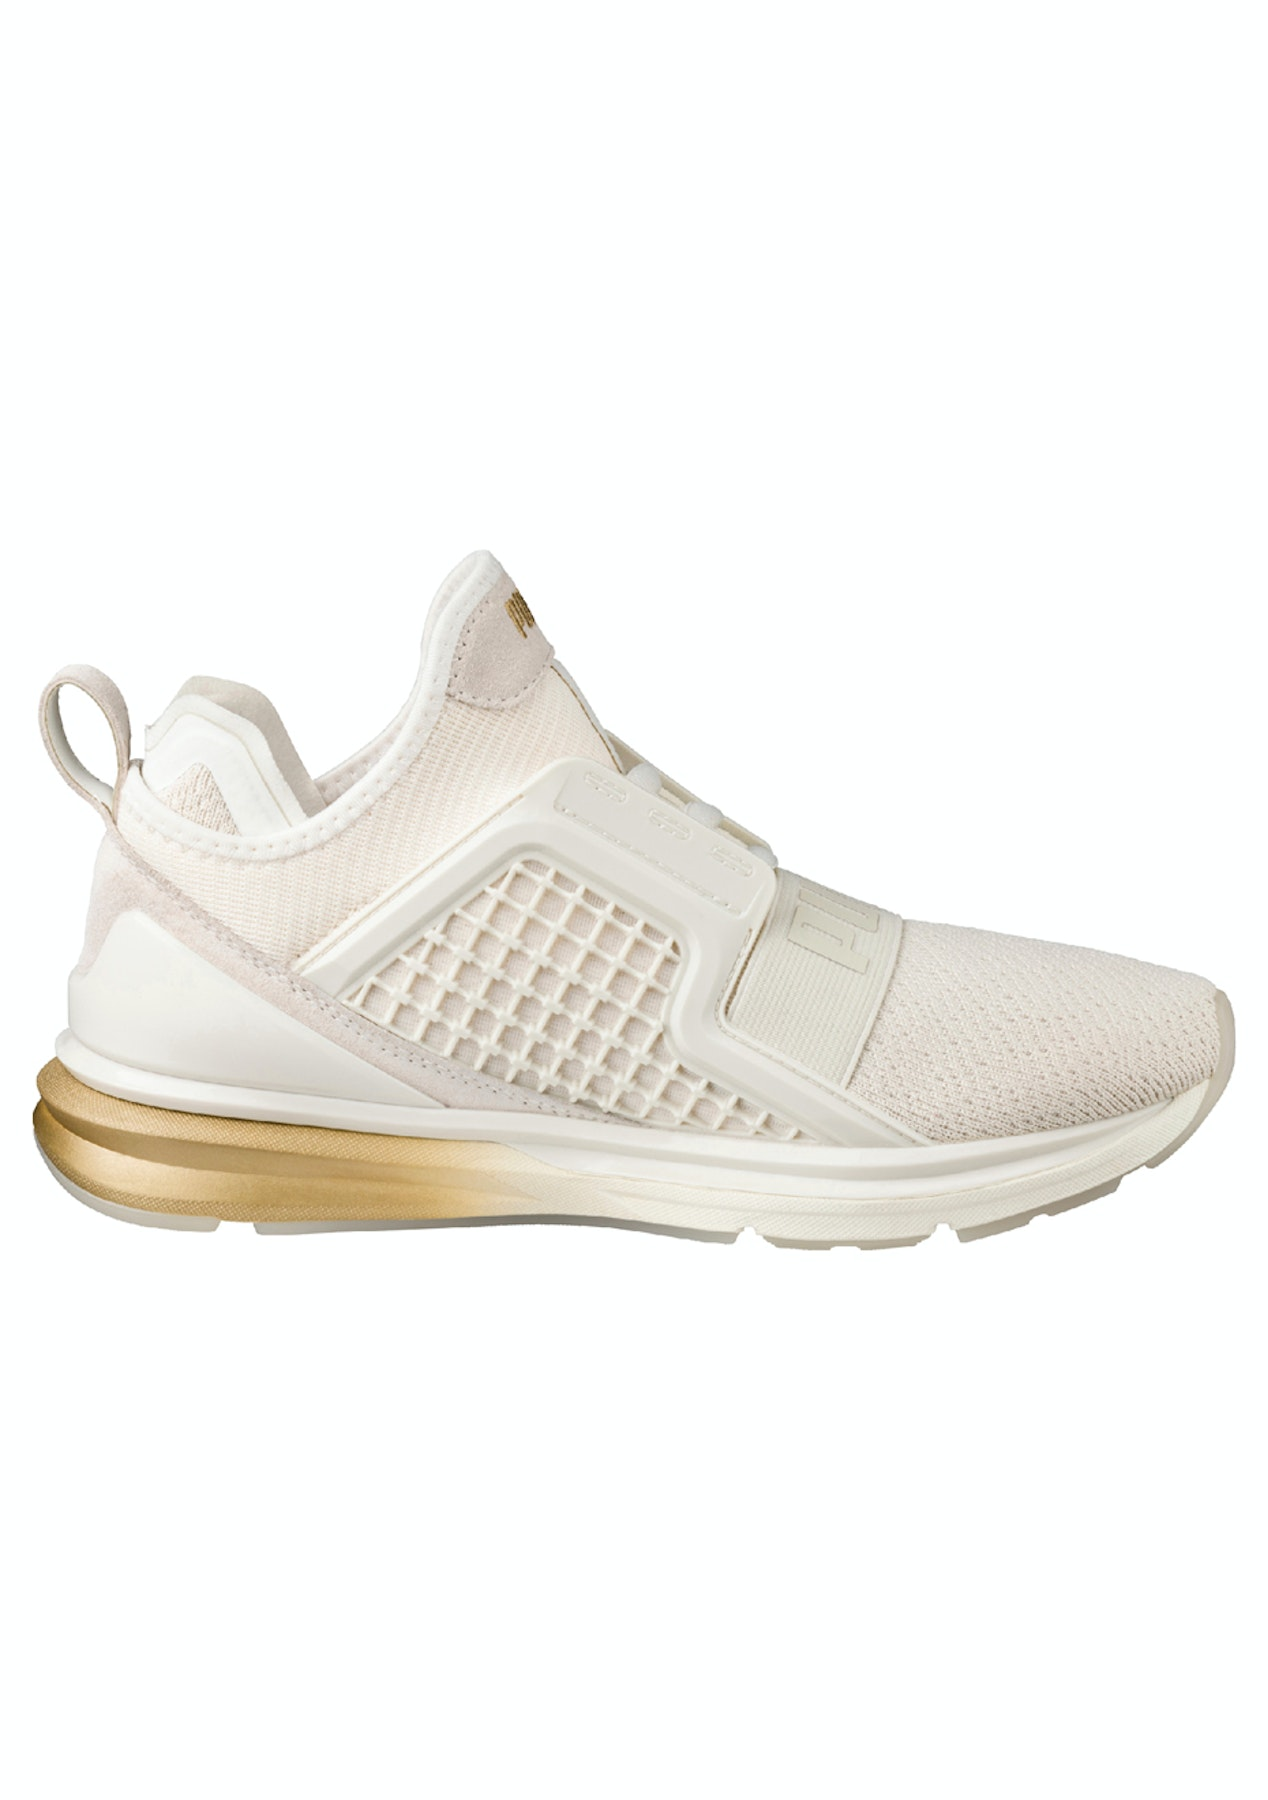 Puma Womens - Ignite Limitless Gold - Up to 75% Off Puma - Onceit 75c98d2ce